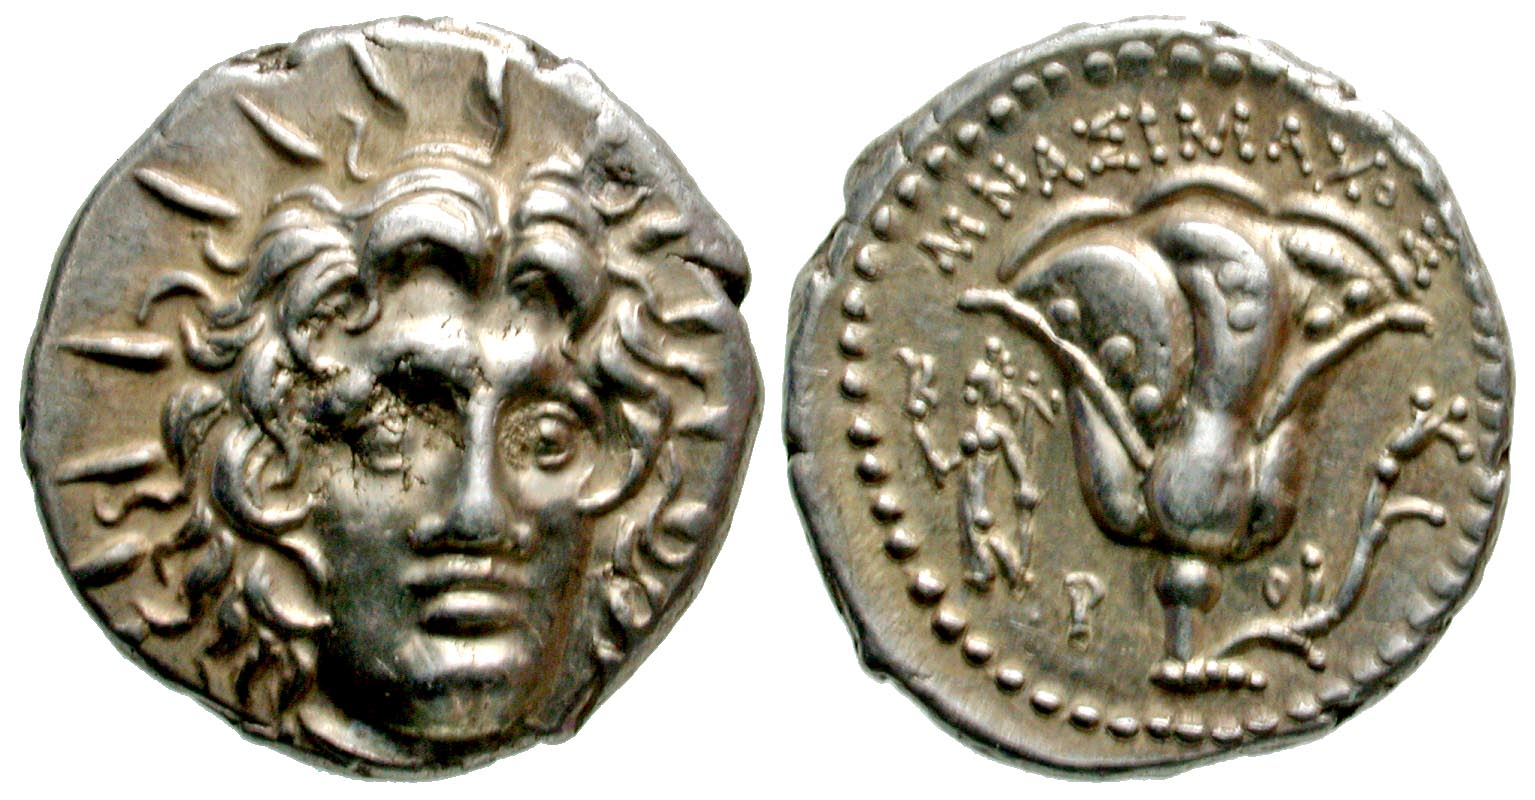 Islands off Caria, Rhodos. Rhodes. 250-229 B.C. AR didrachm. Mnasimachos, magistrate. From the D. Thomas Collection.